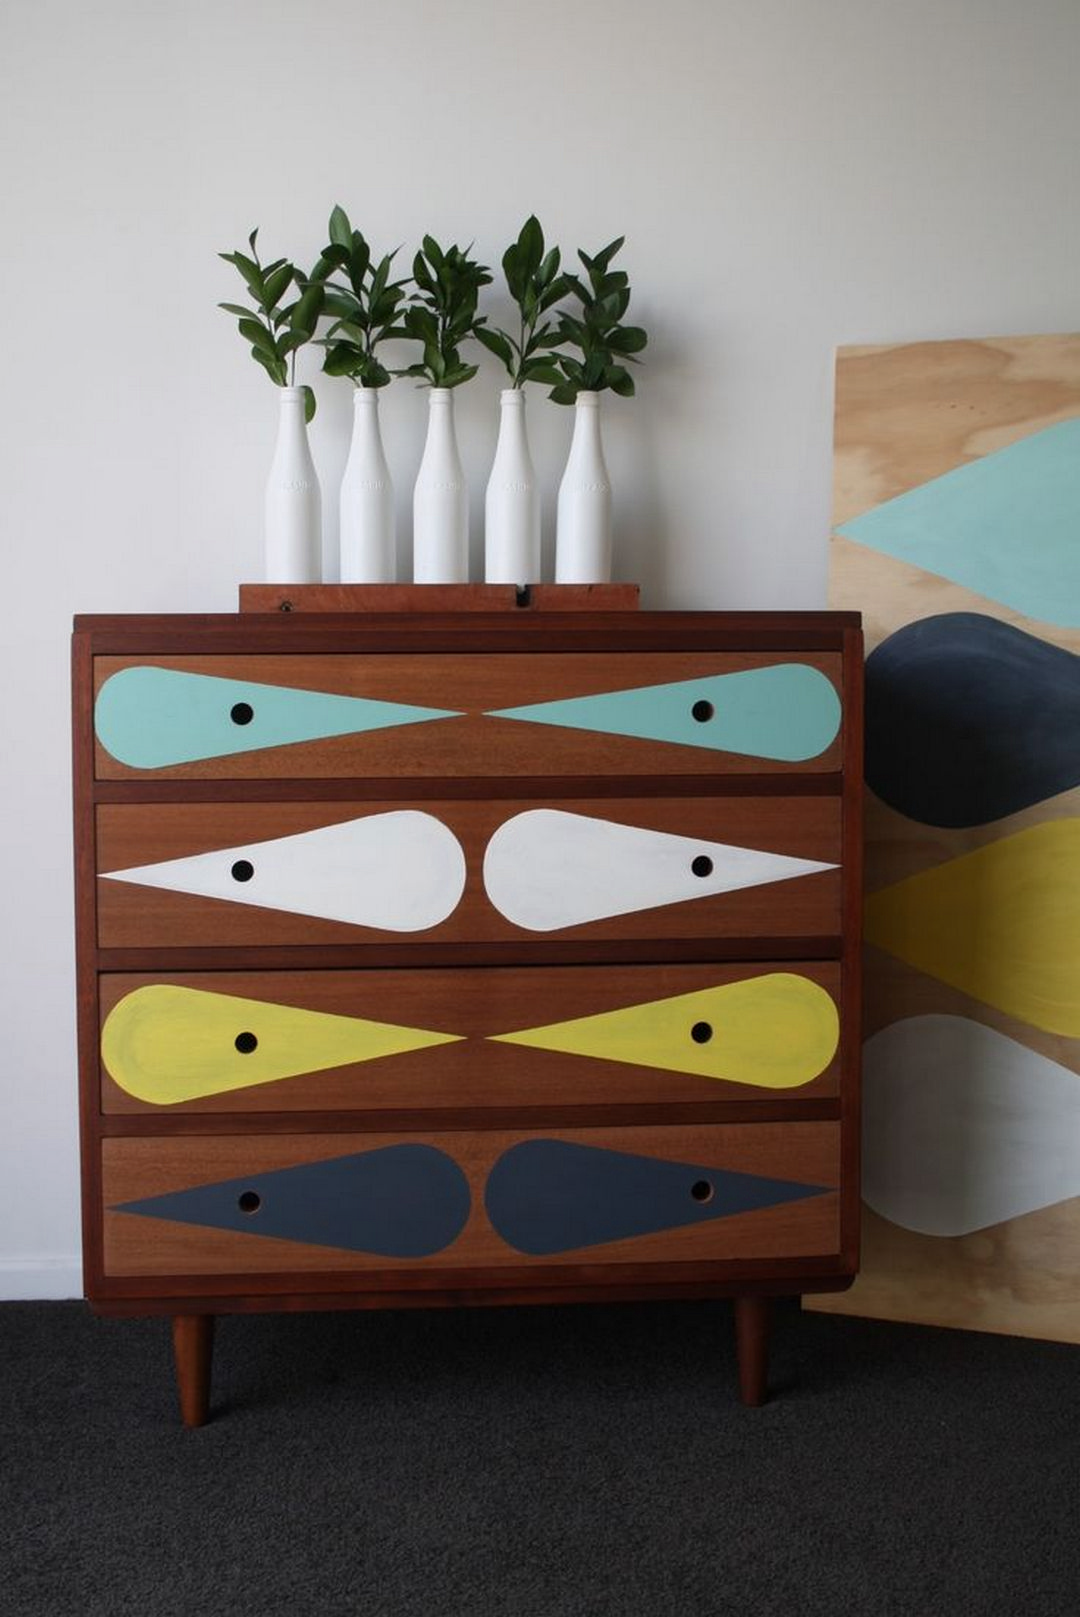 Free Up Space In Your Home 5 Tips For Getting Rid Of Old Furniture Meubilair Makeover Ideeen Voor Thuisdecoratie Meubelontwerp